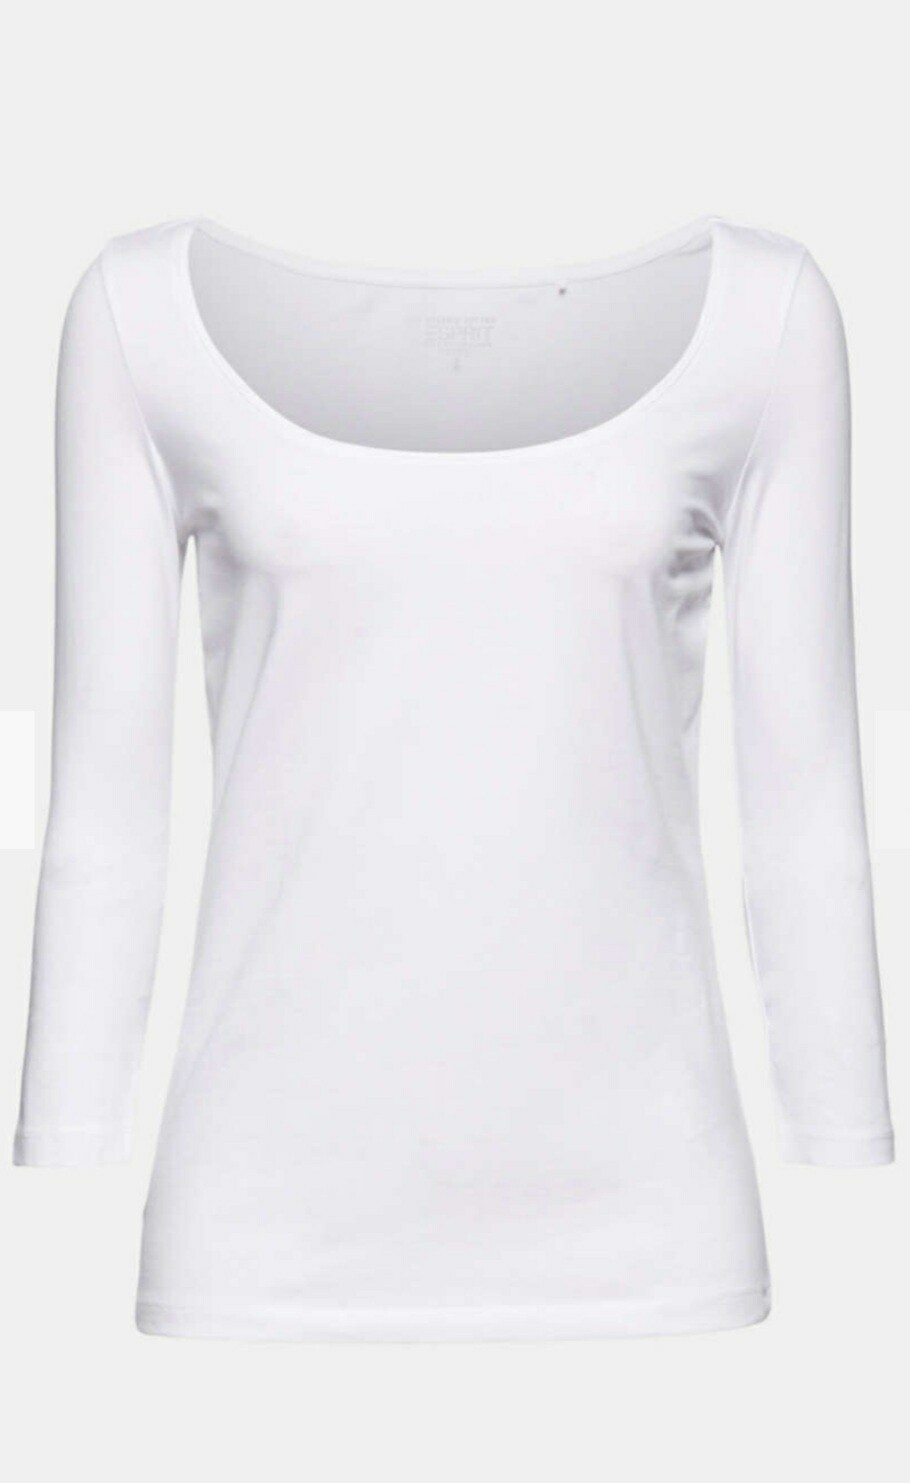 Long sleeve top with organic cotton